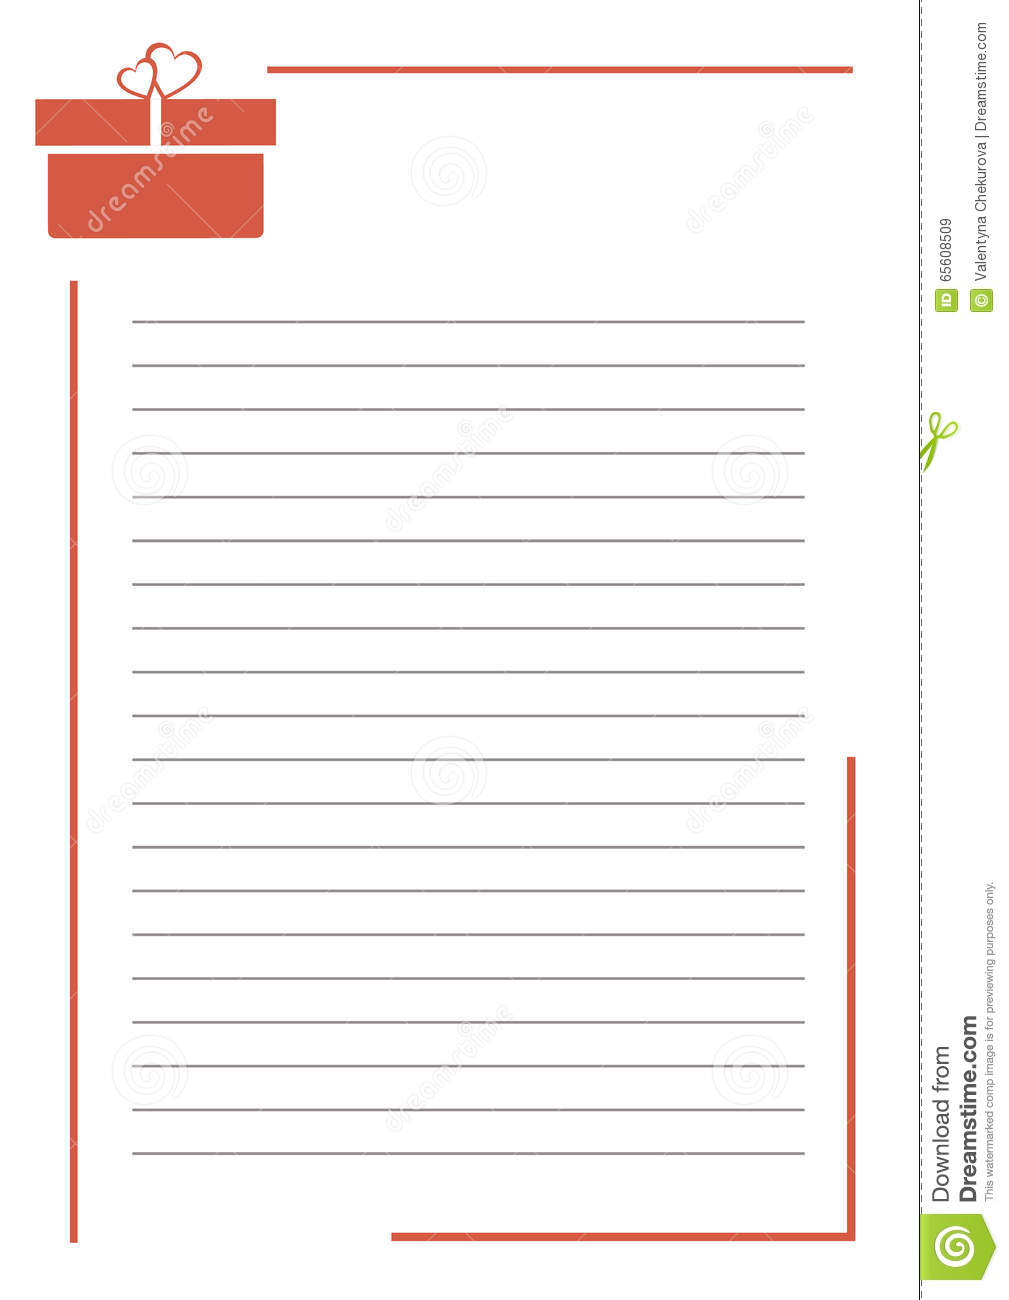 005 Note Cards For Research Paper Vector Blank Letter Greeting Card White Form Red Gift Box Lines Border Format Size Rare Formatting Notecards Papers Mla Digital Full